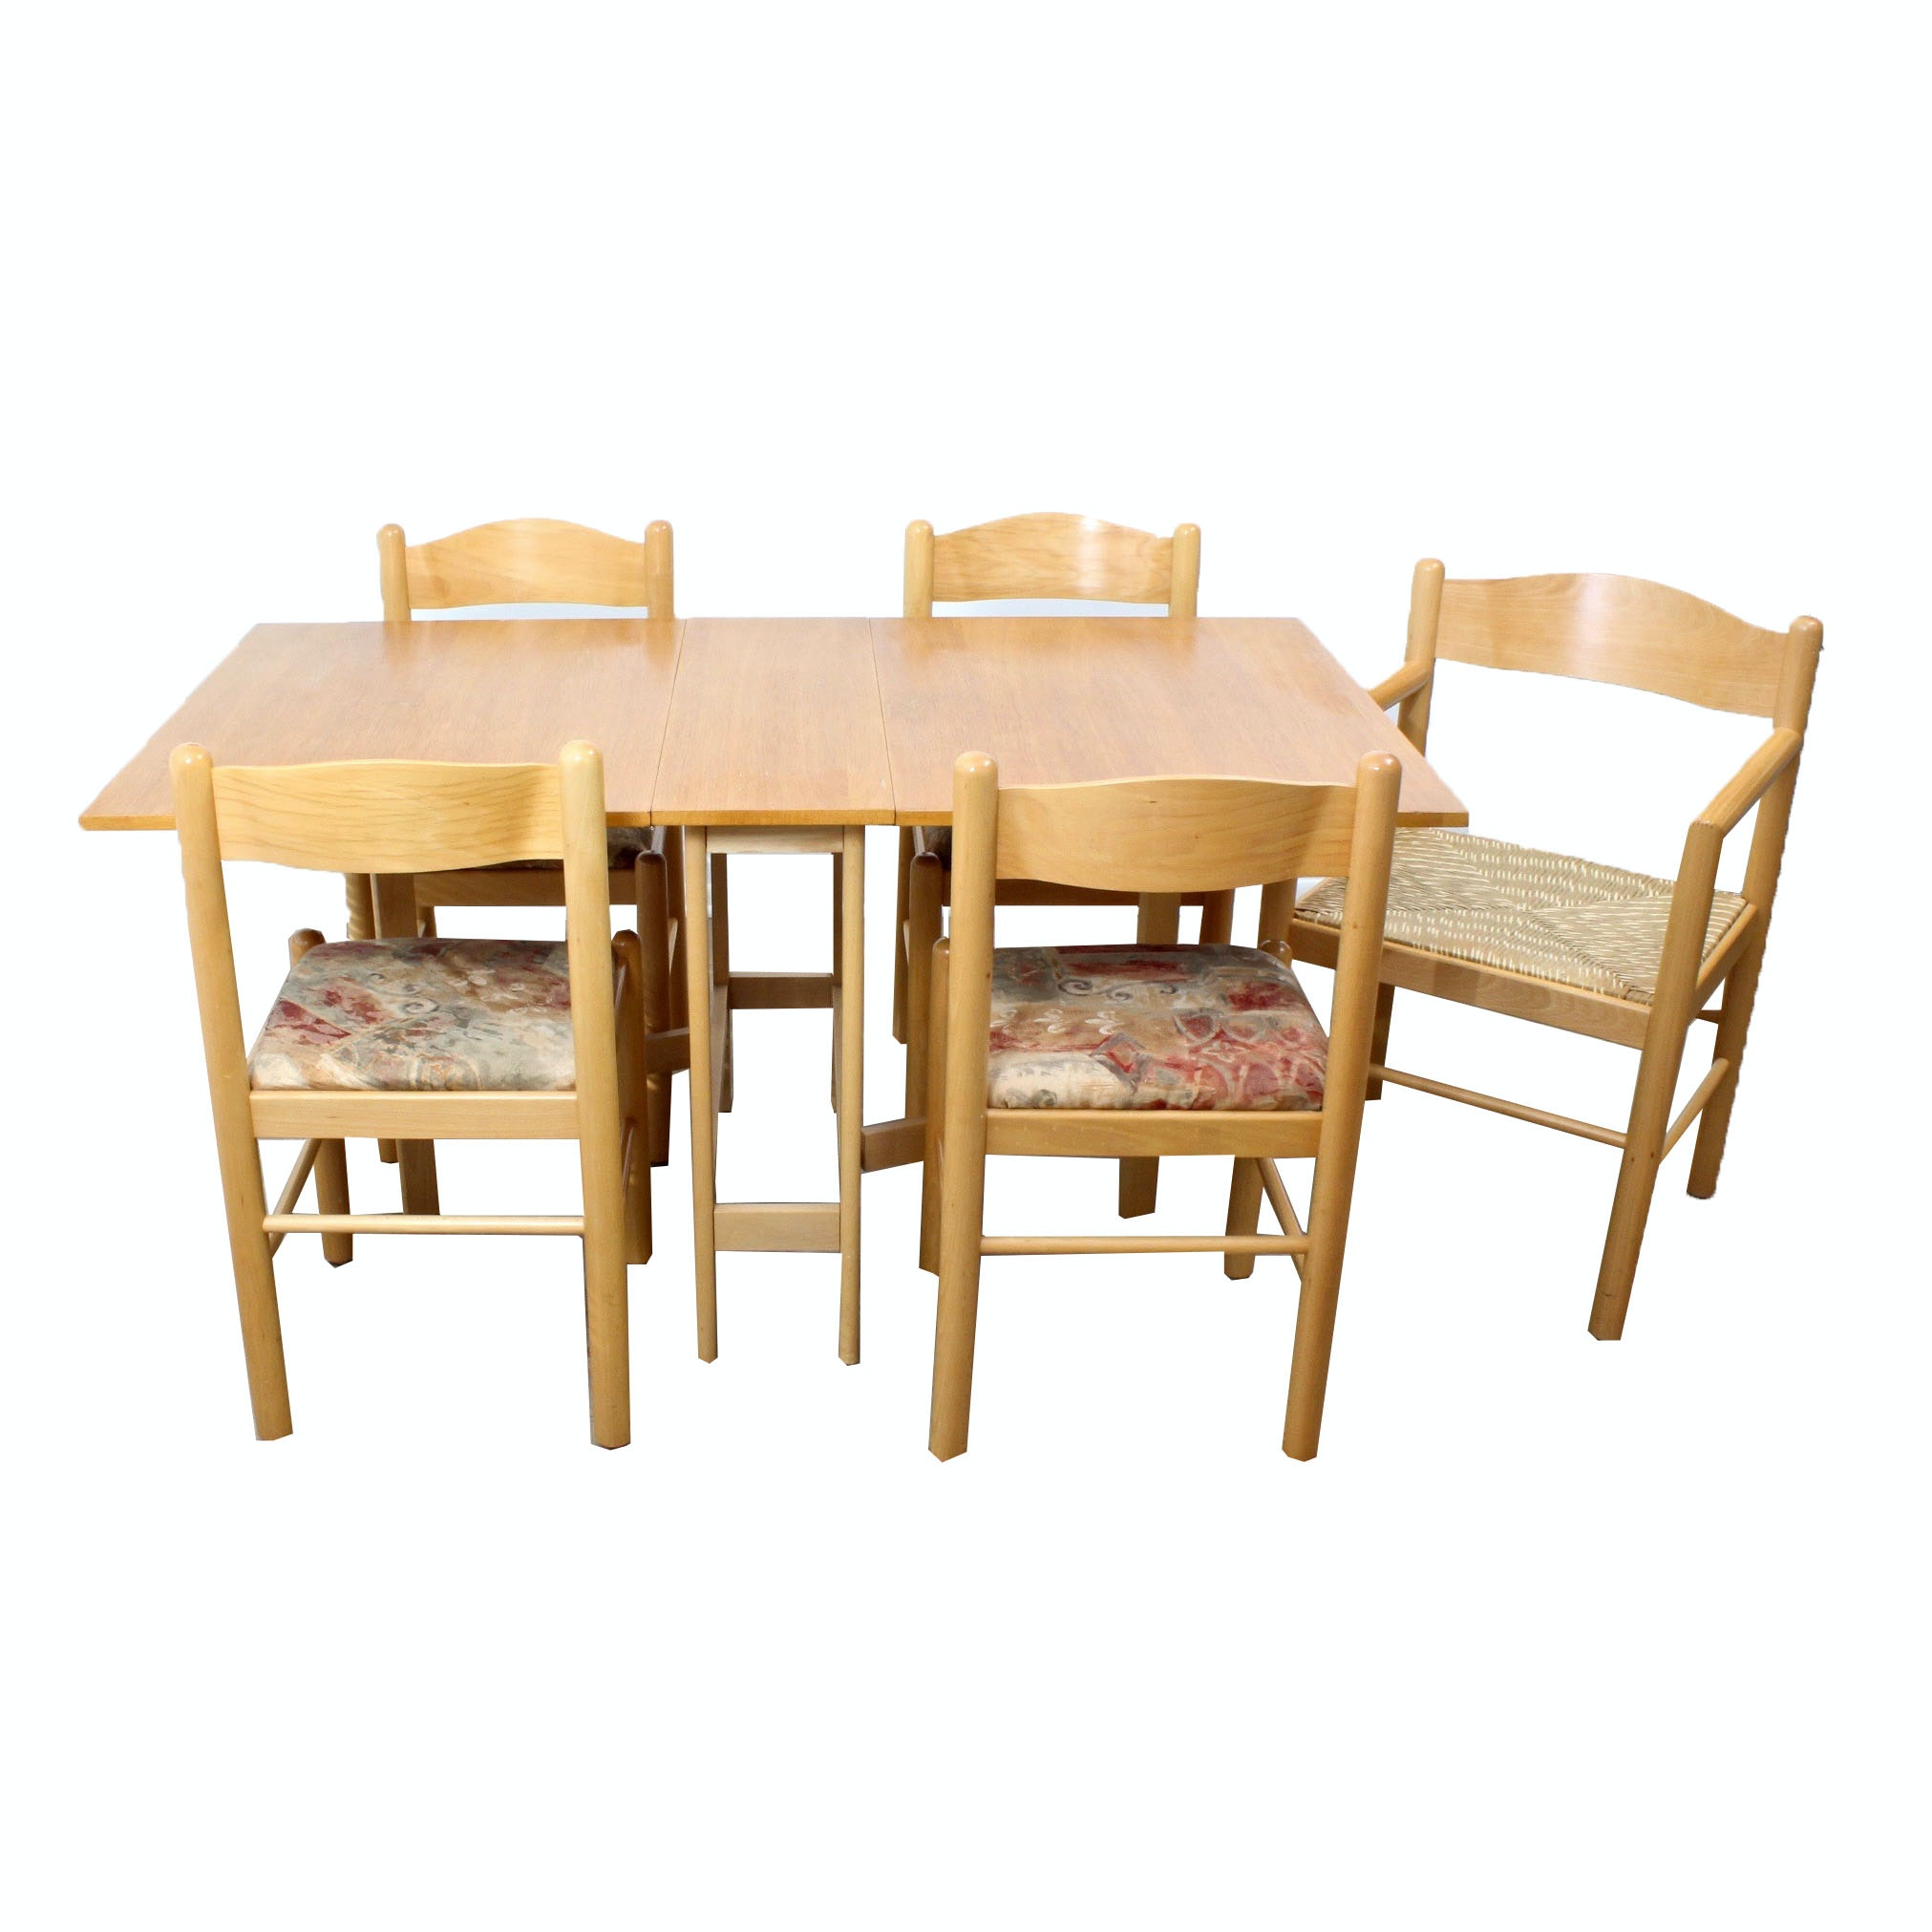 Vintage Oak and Maple Gateleg Table with Chairs